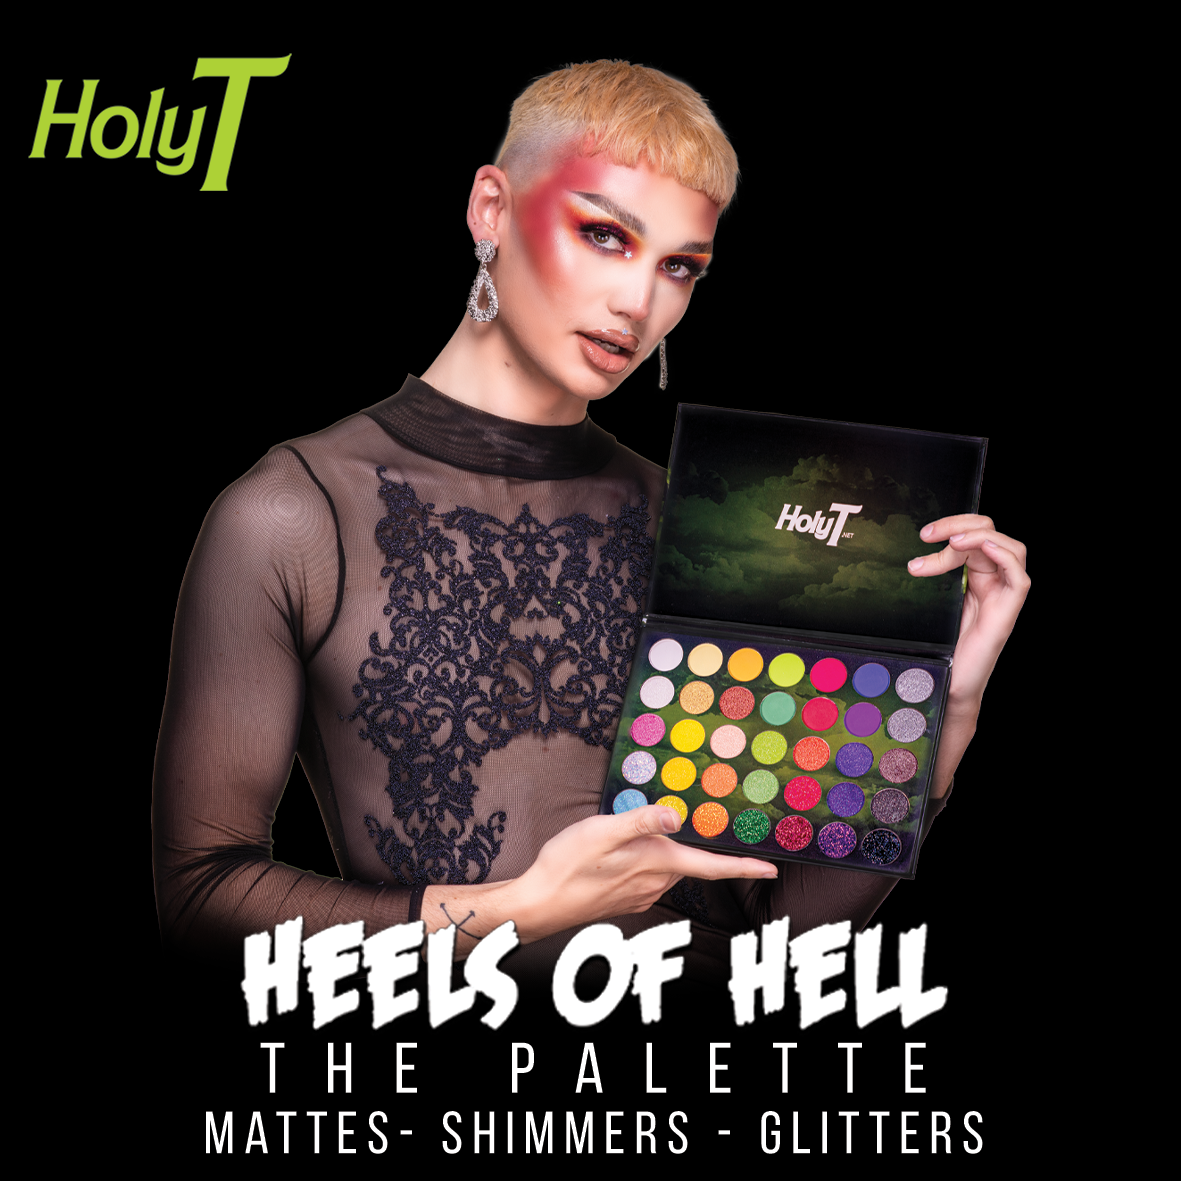 Heels of Hell: The Palette